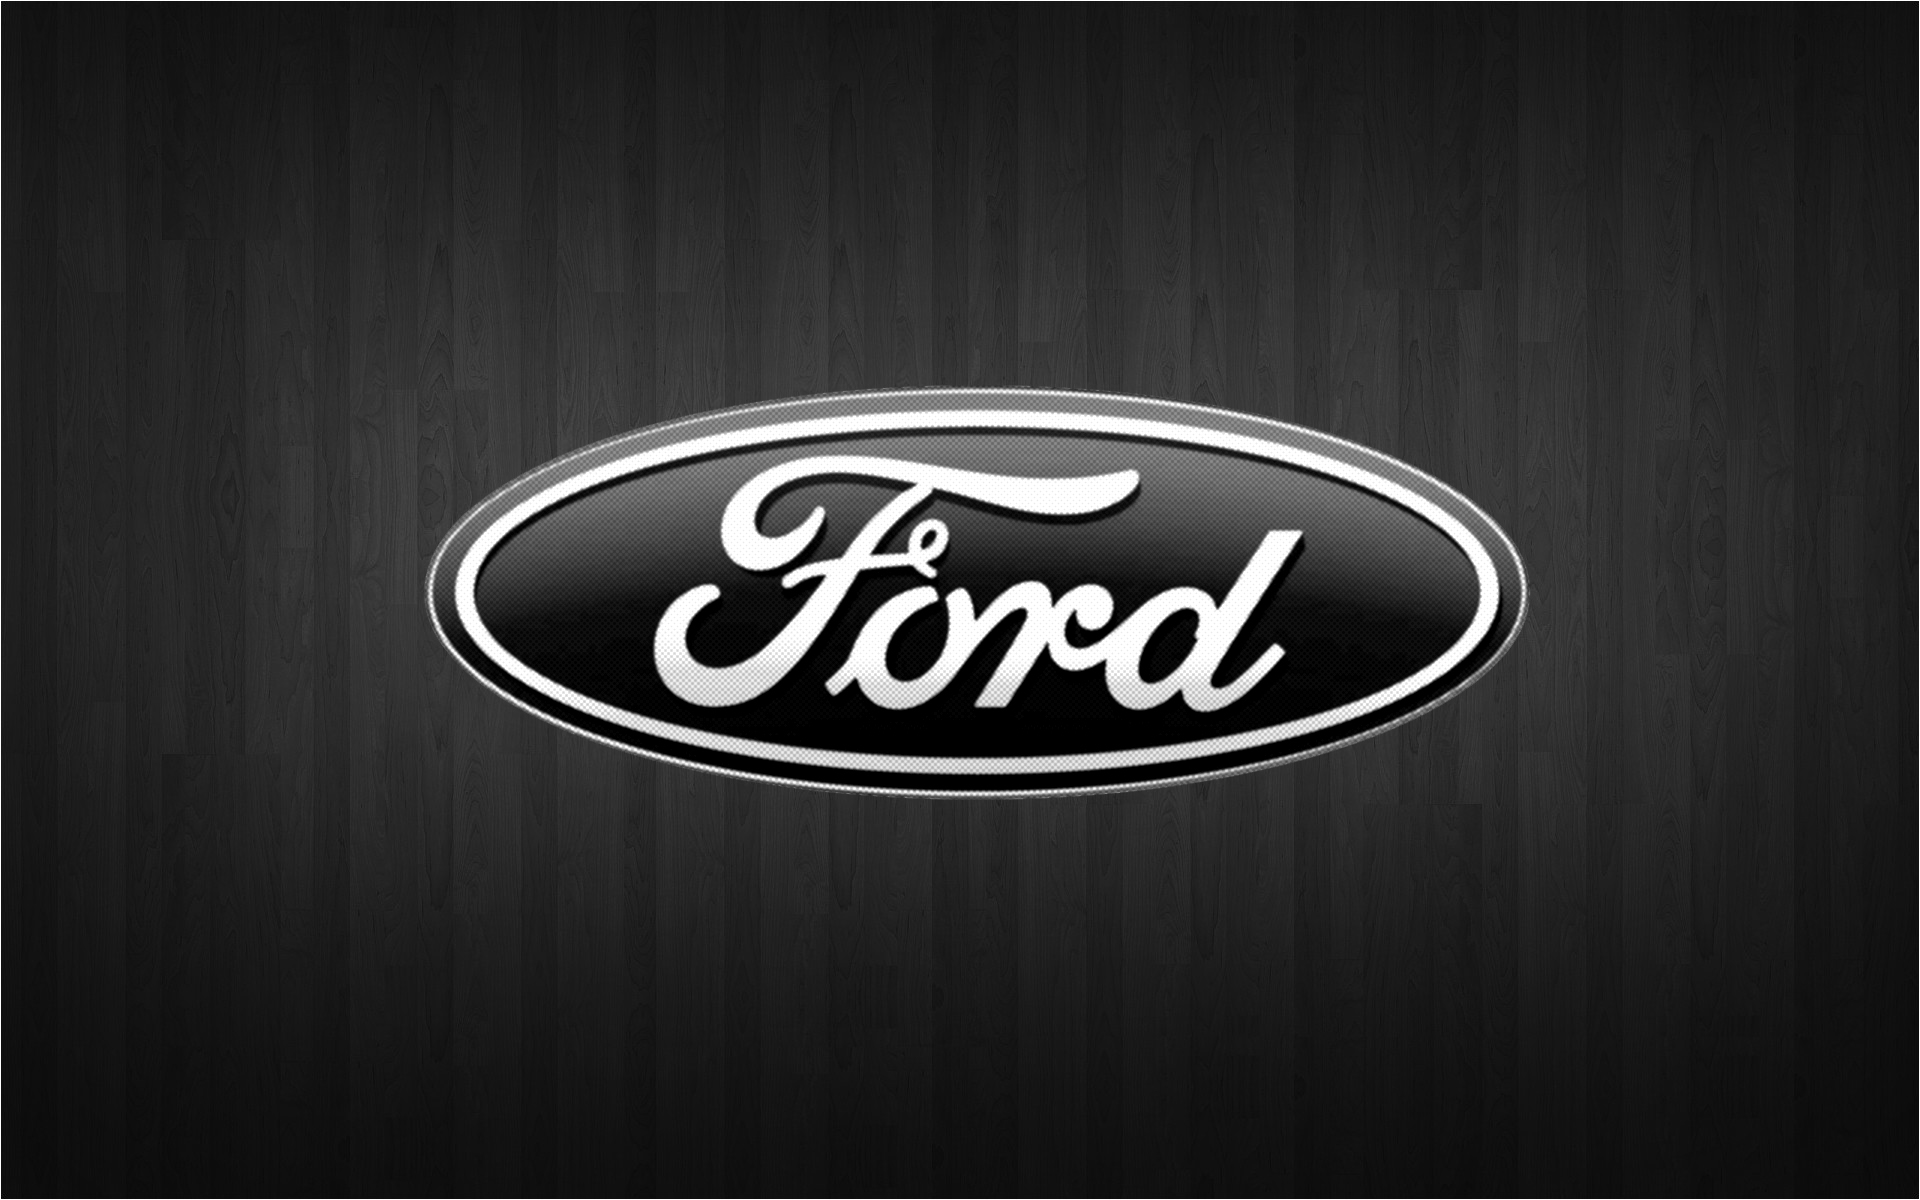 Ford HD Wallpaper  Background Image  1920x1200  ID:275427  Wallpaper Abyss